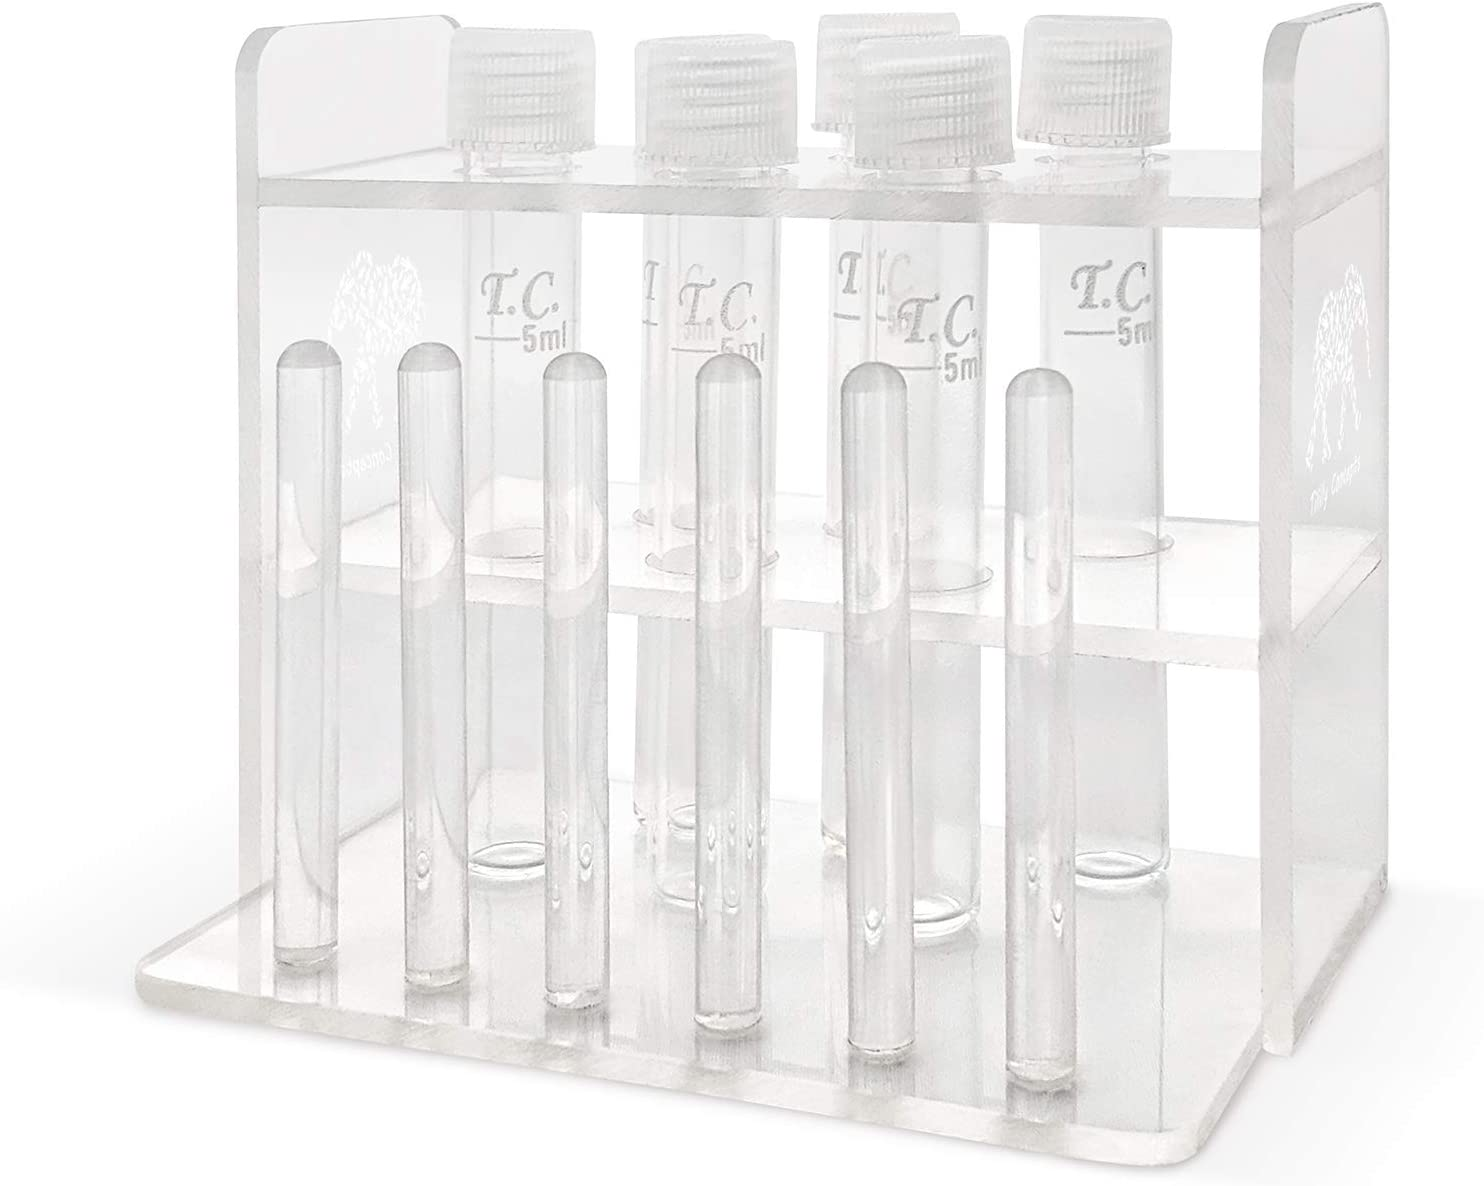 Tililly Concepts Aquarium Rack and Test Tube Set 1 Handmade Acrylic Rack with Drying Poles Bundled with 6 Glass Test Tubes with 5 ml Mark and Leak-Proof Screw Cap